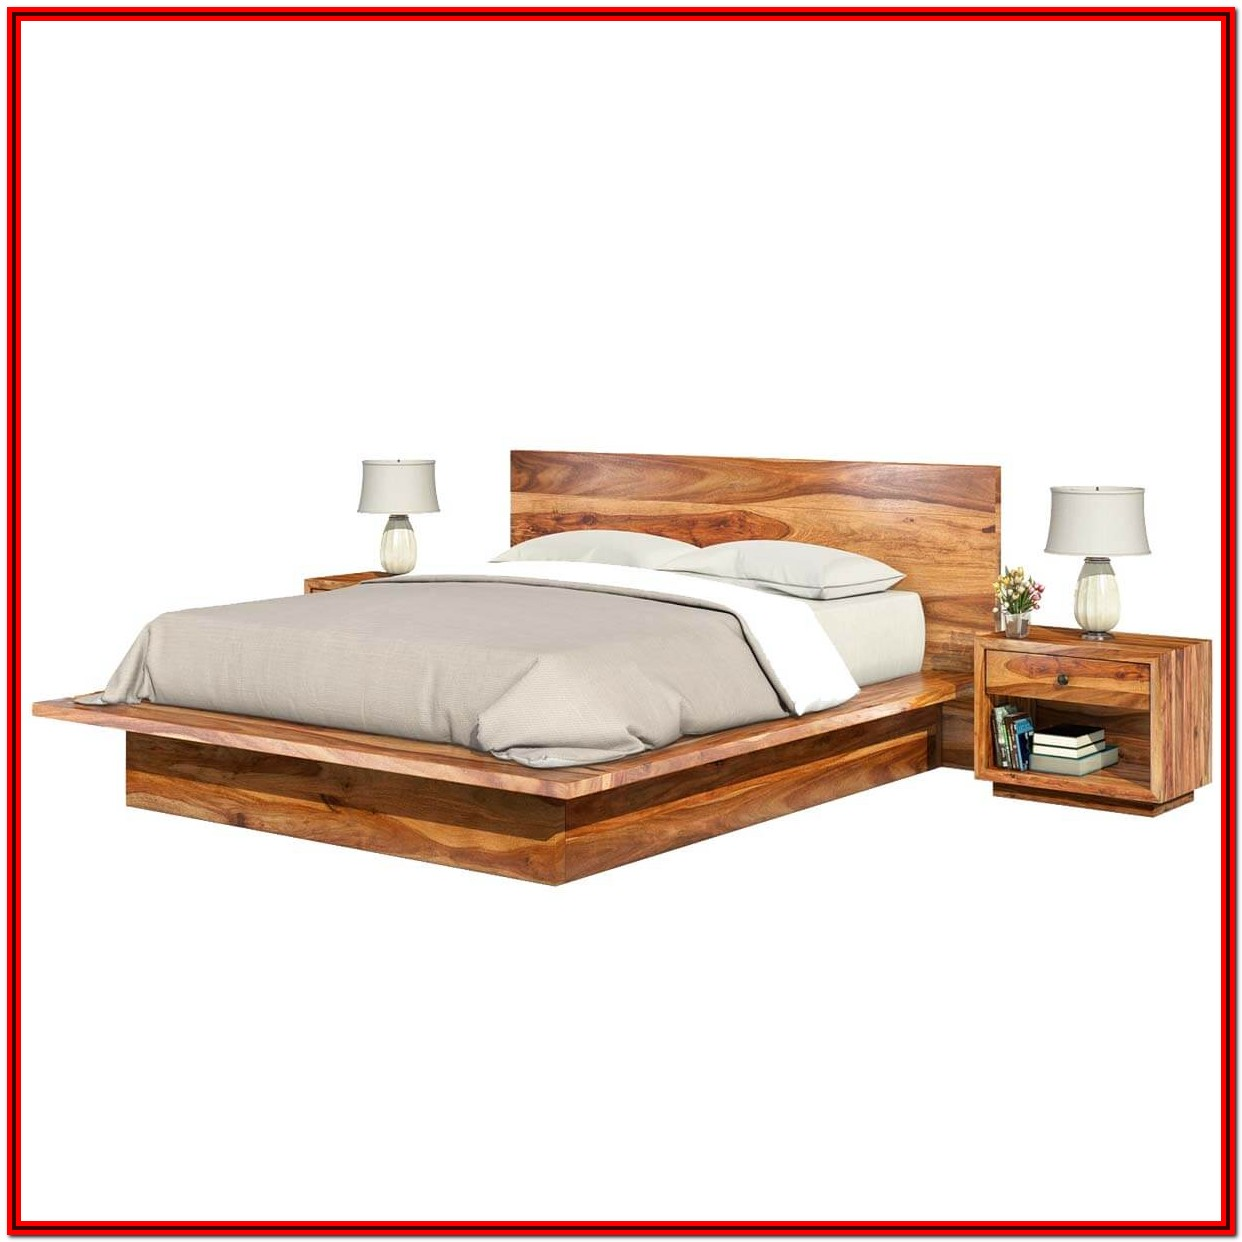 Bed Frames King Size Wood